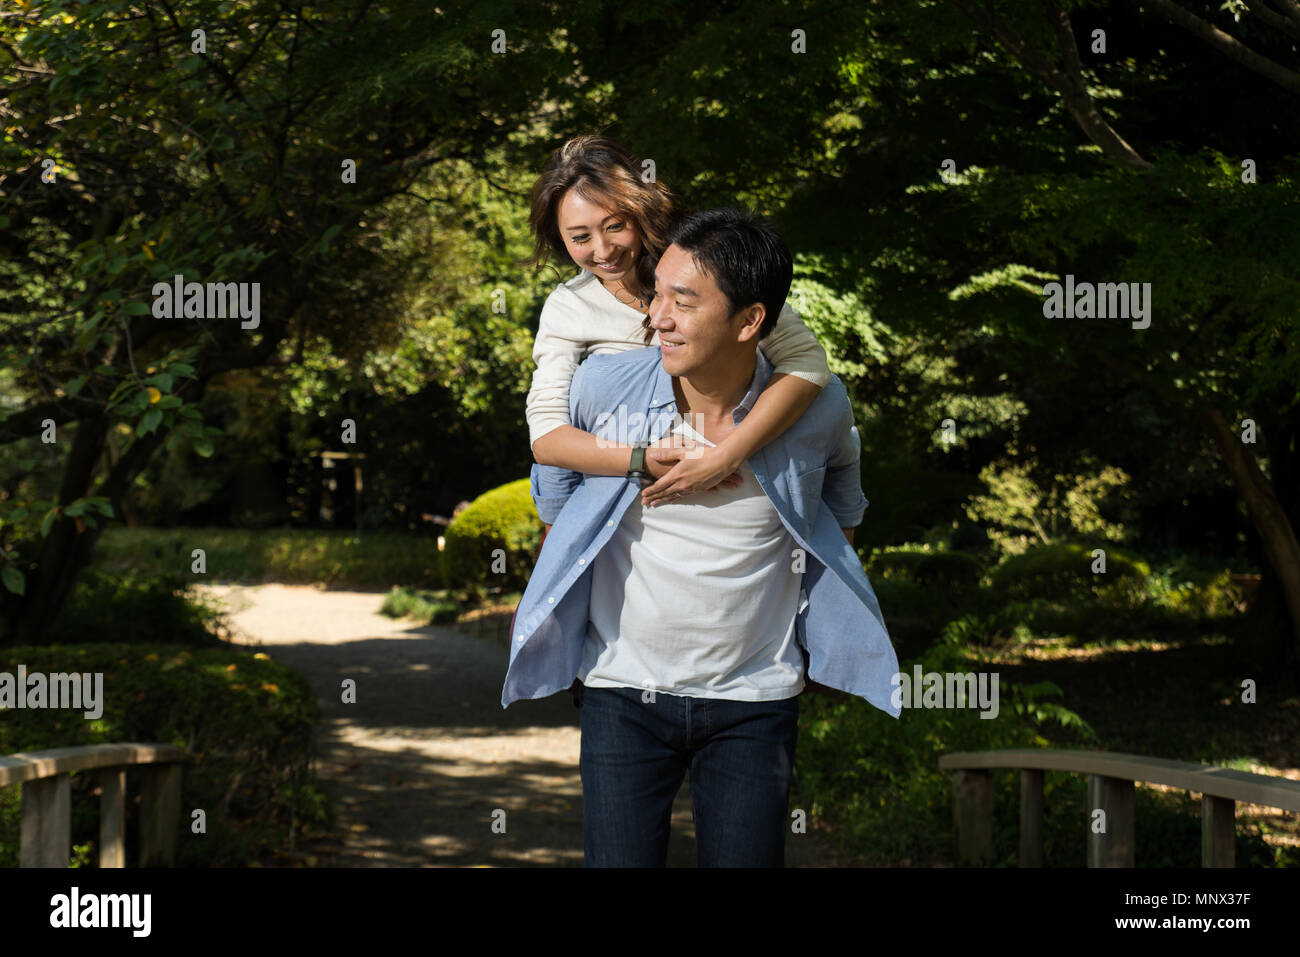 Beautiful asian couple dating in a park - Japanese man and woman having fun outdoors - Stock Image